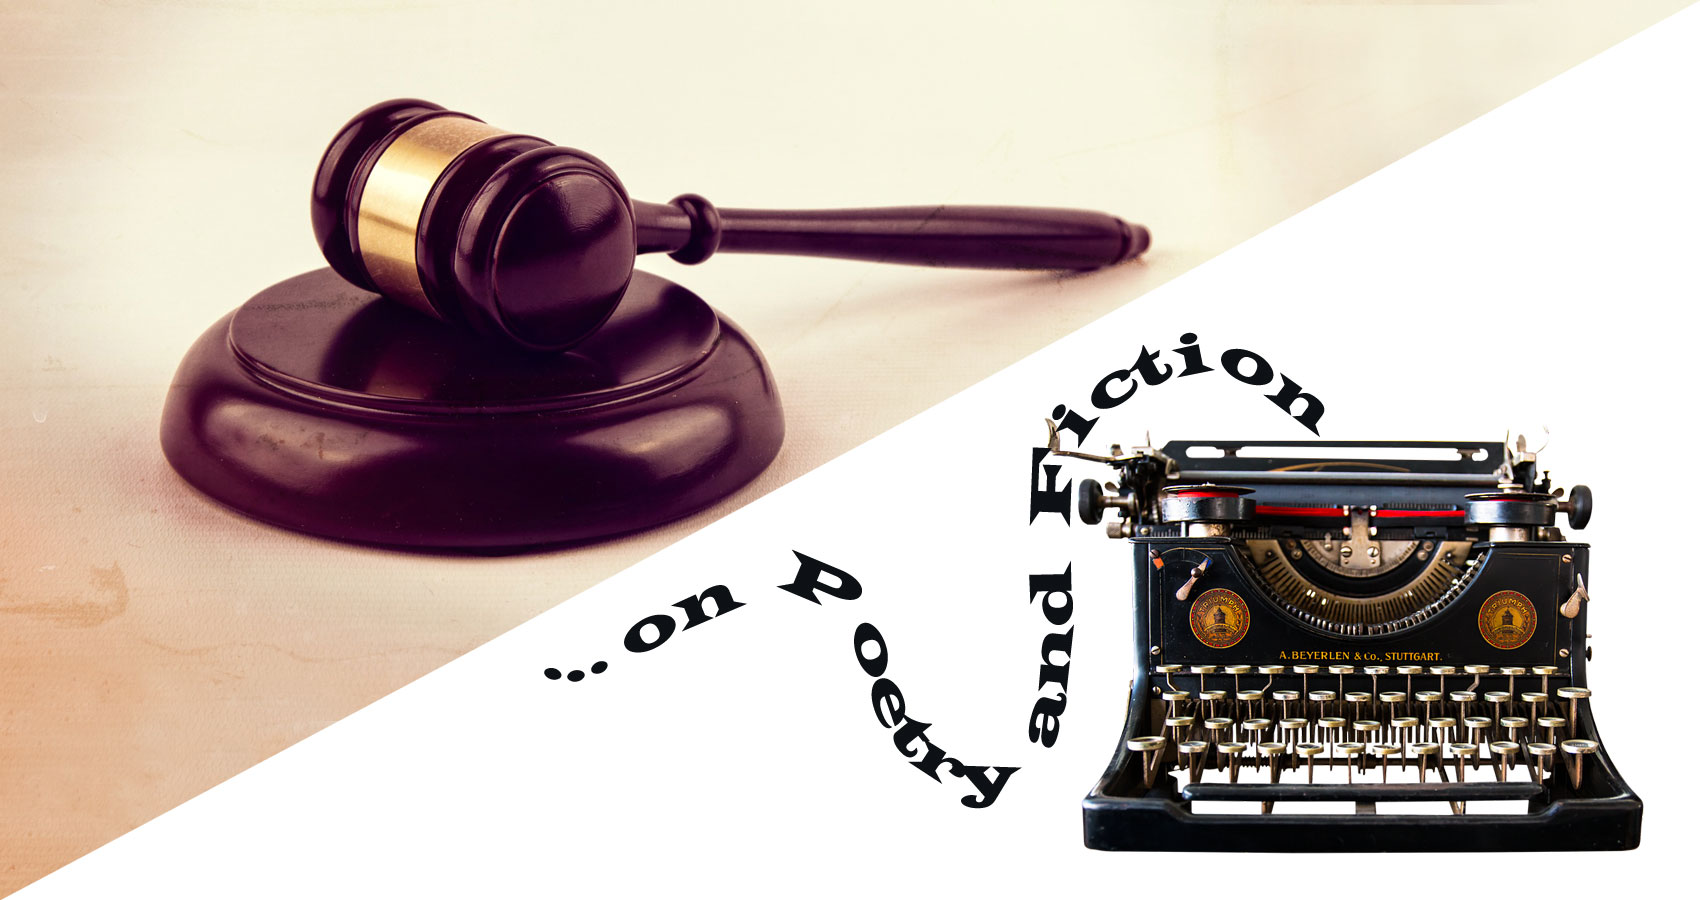 """...on Poetry and Fiction - Just """"One Word"""" Away (""""GUILT""""), editorial by Phyllis P. Colucci at Spillwords.com"""